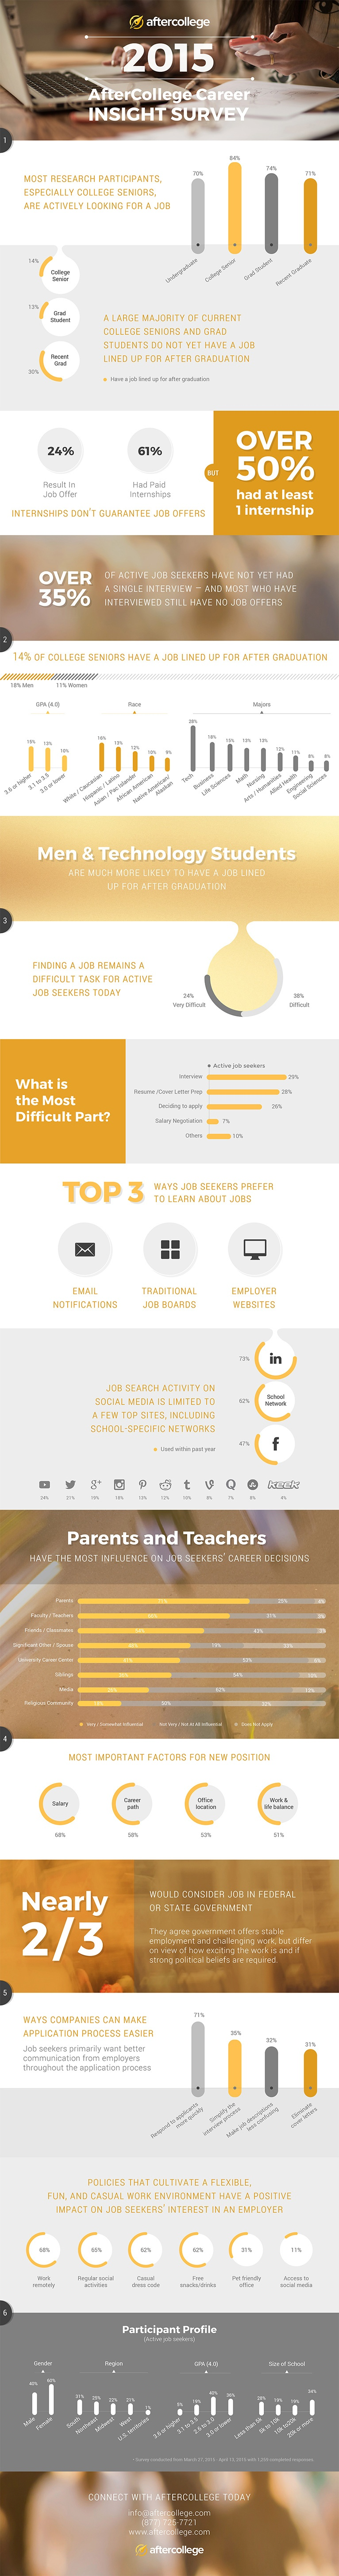 AfterCollege_Annual_Career_Insights_Infographic